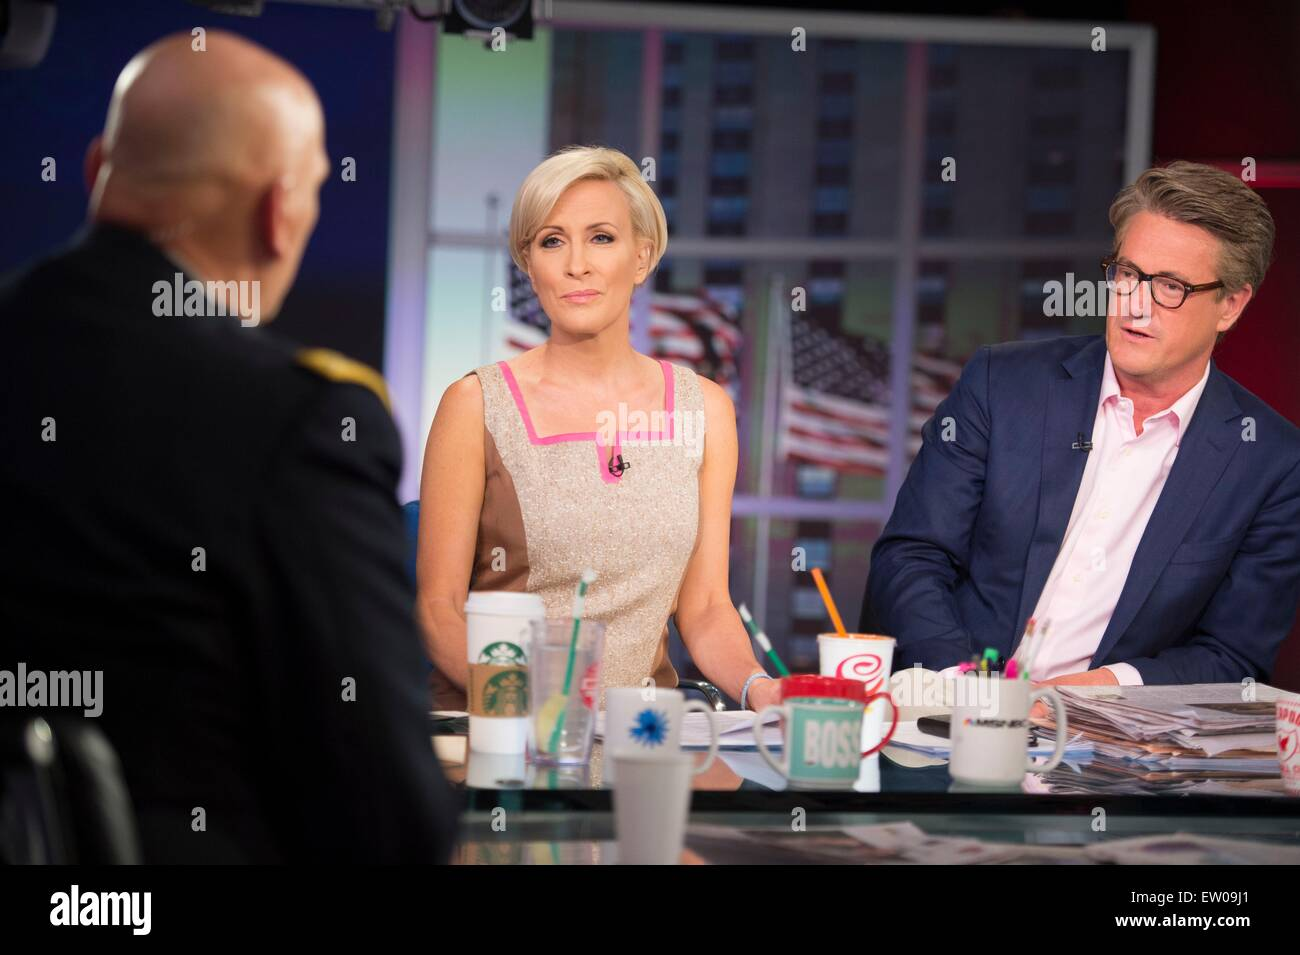 Joe Scarborough and Mika Brzezinski listen as U.S. Army Chief of Staff Gen. Ray Odierno talks during his appearance - Stock Image